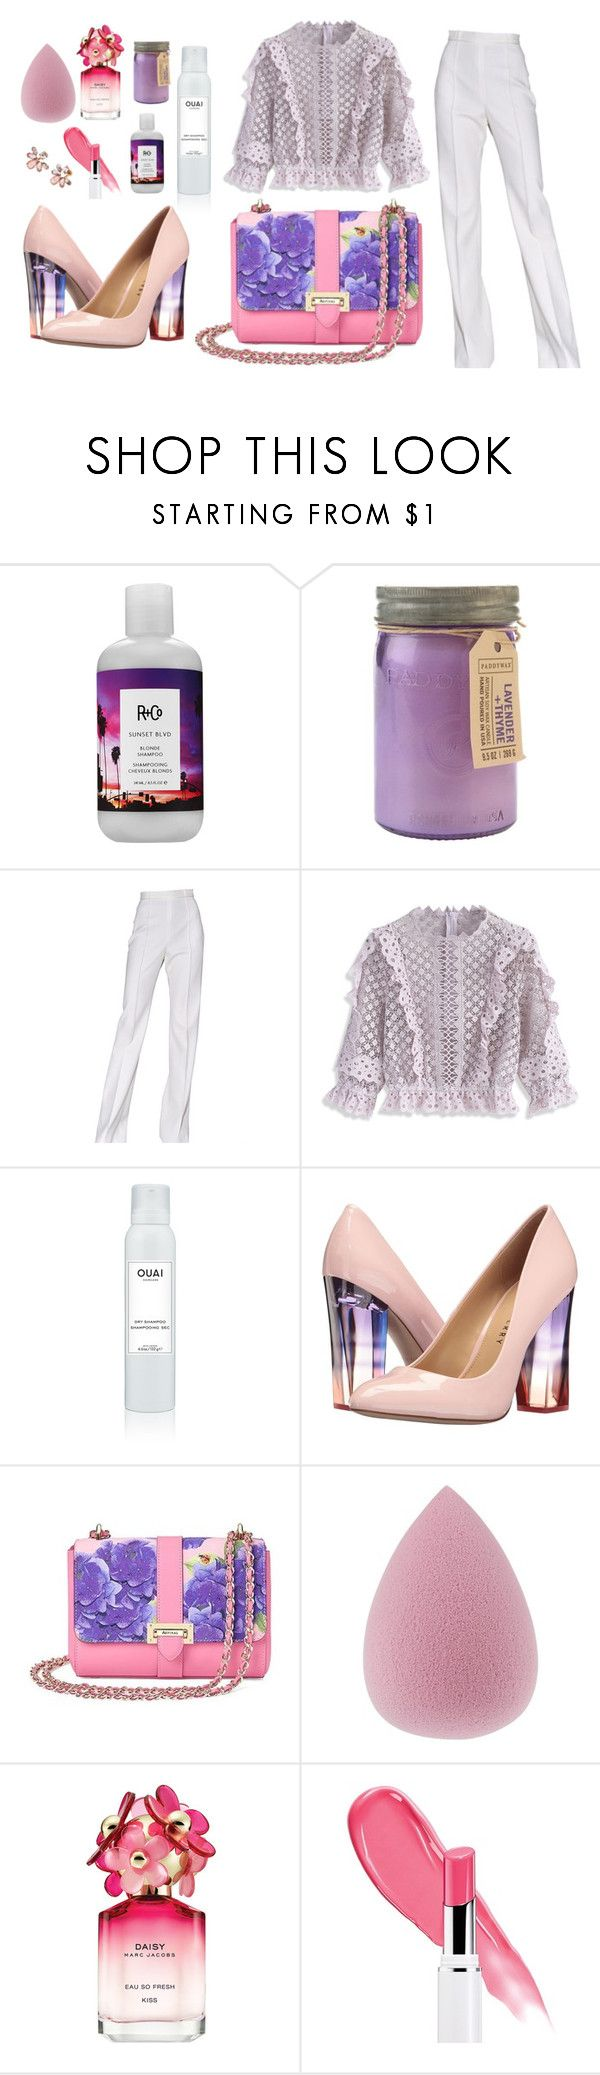 """Spring florals"" by lanagur on Polyvore featuring мода, R+Co, Paddywax, Jason Wu, Chicwish, Ouai, Aspinal of London, Marc Jacobs, Marchesa и Spring"